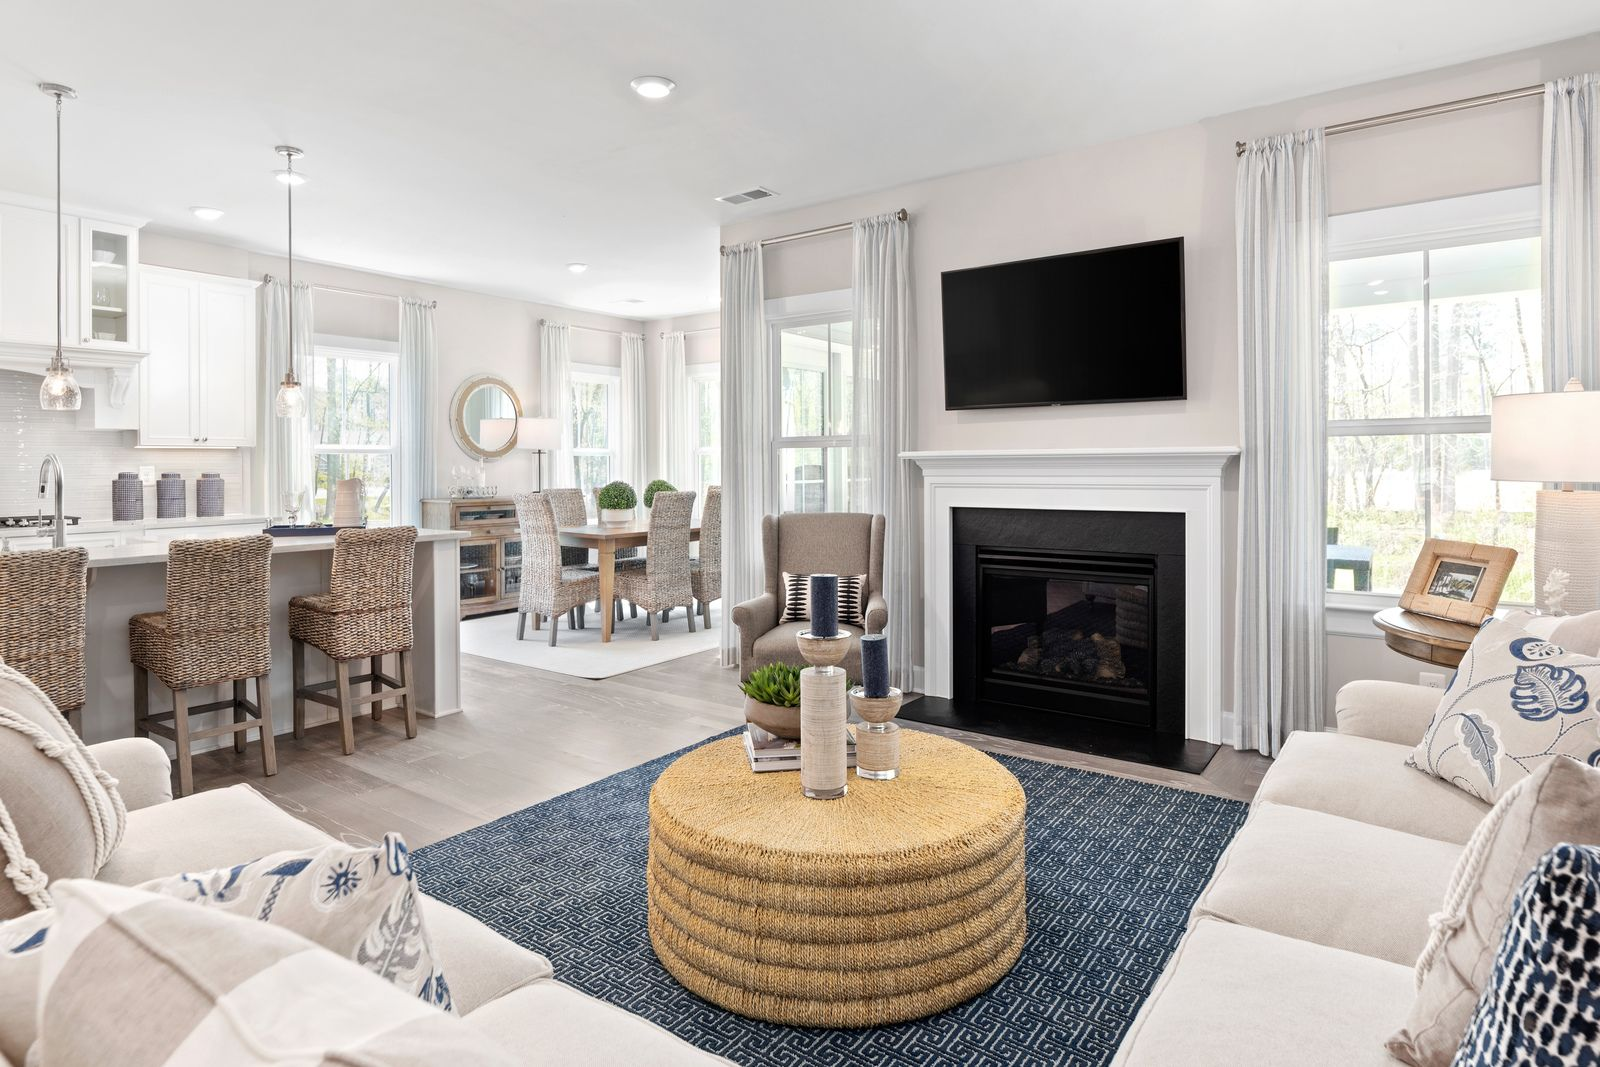 Living Area featured in the Stapleton By NVHomes in Sussex, DE